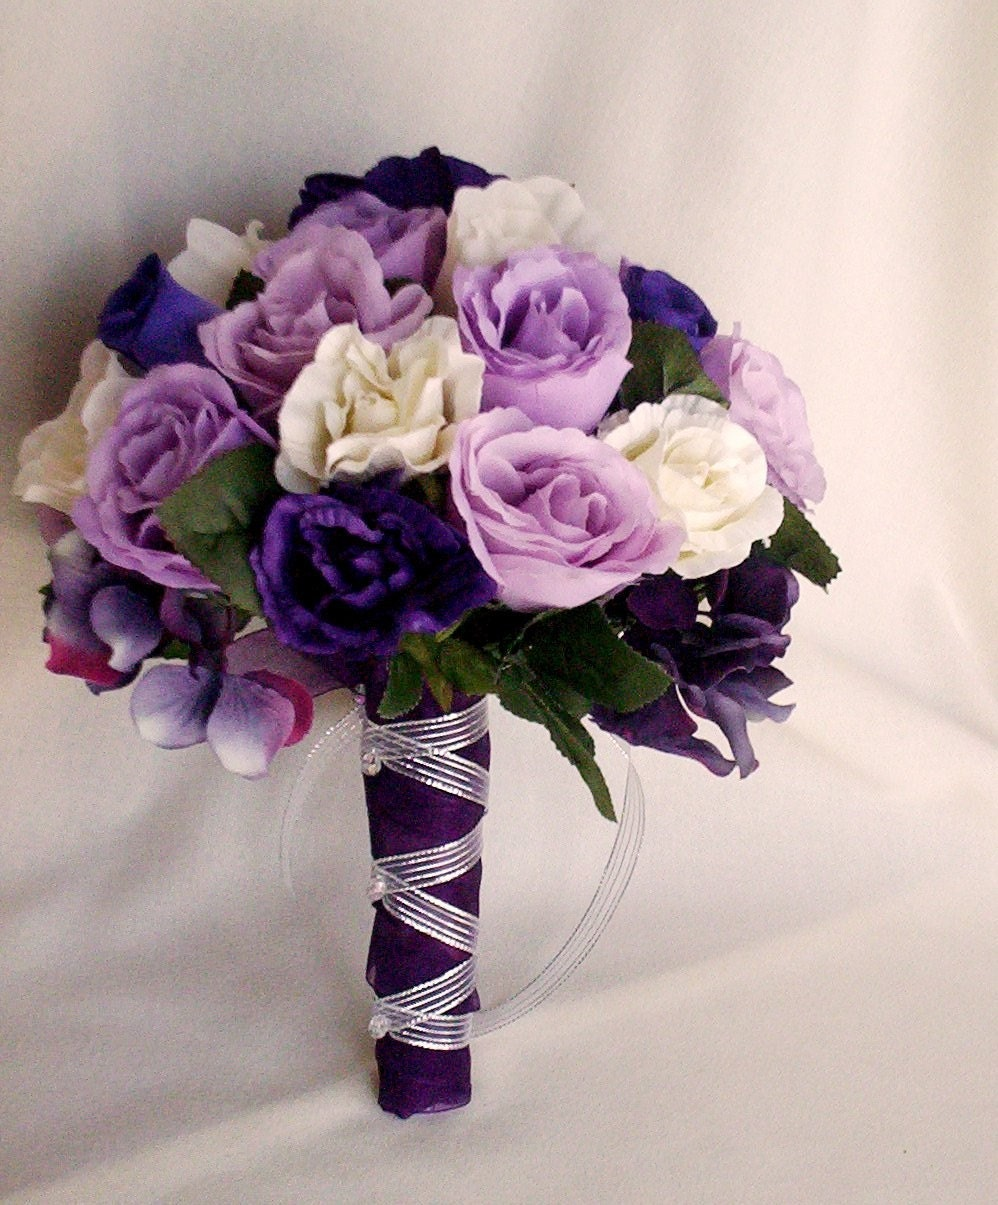 Wedding Bridal Flowers: Silk Purple Rose Bridal Bouquets Package Custom For Helen